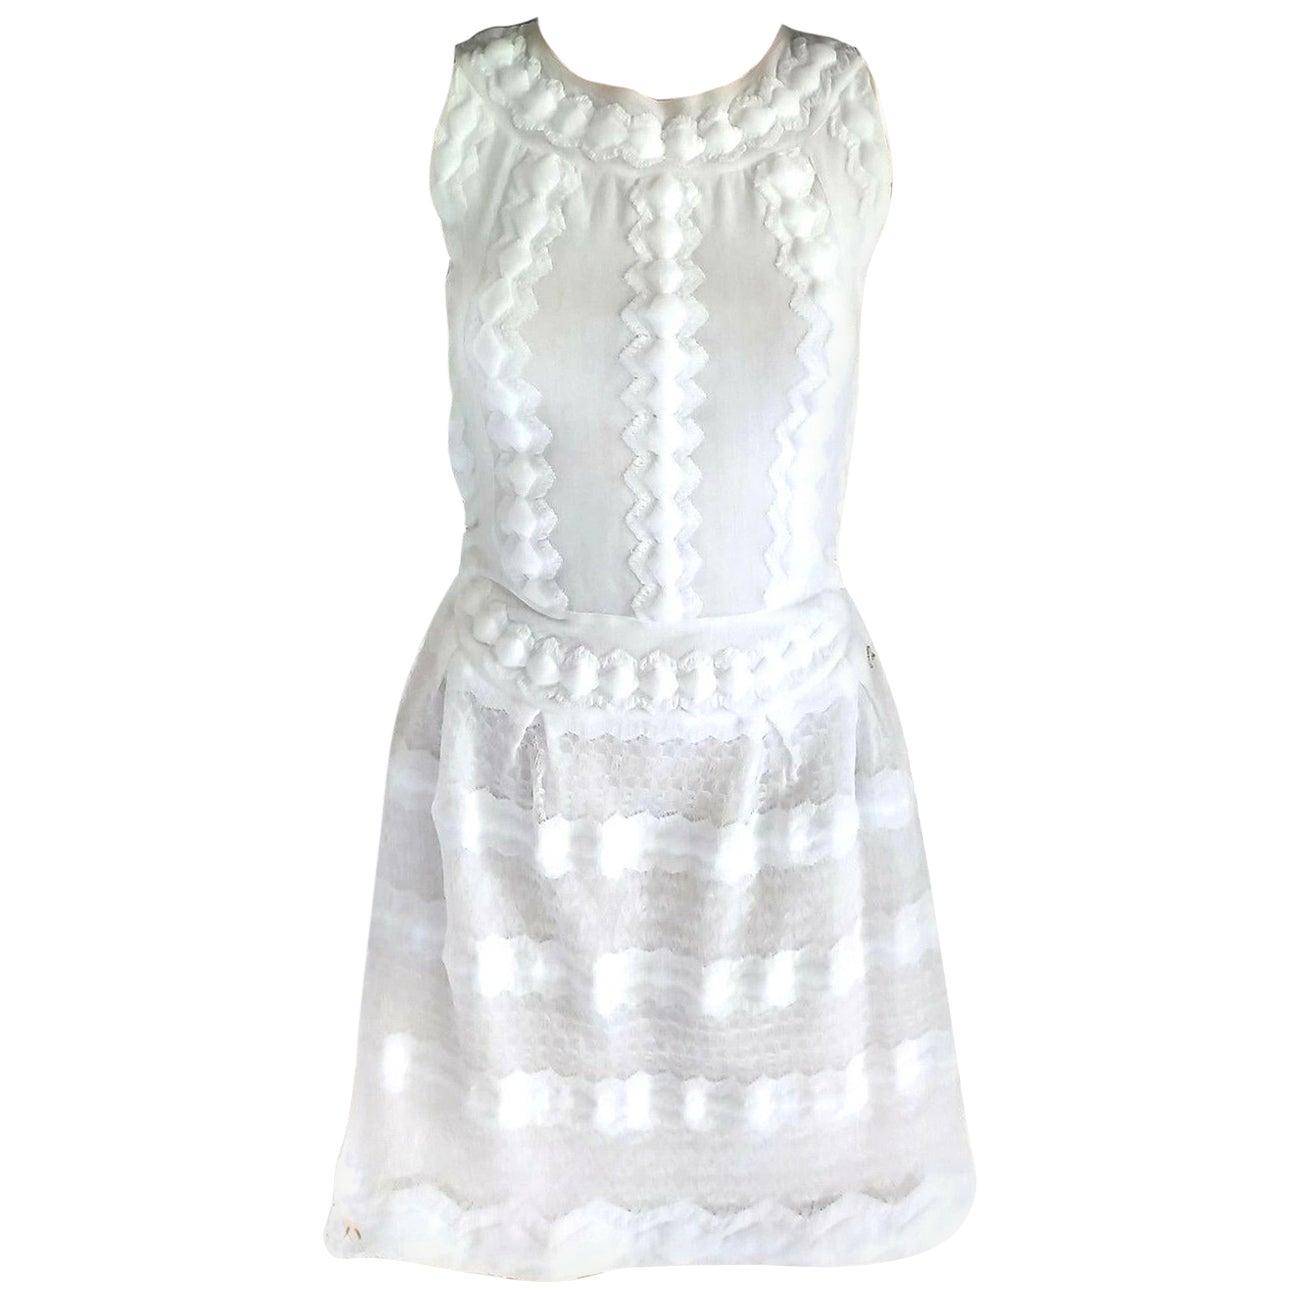 2015 SS15 Chanel Angelic White Camellia Embellished A-Line Dress FR 36/ US 2 4